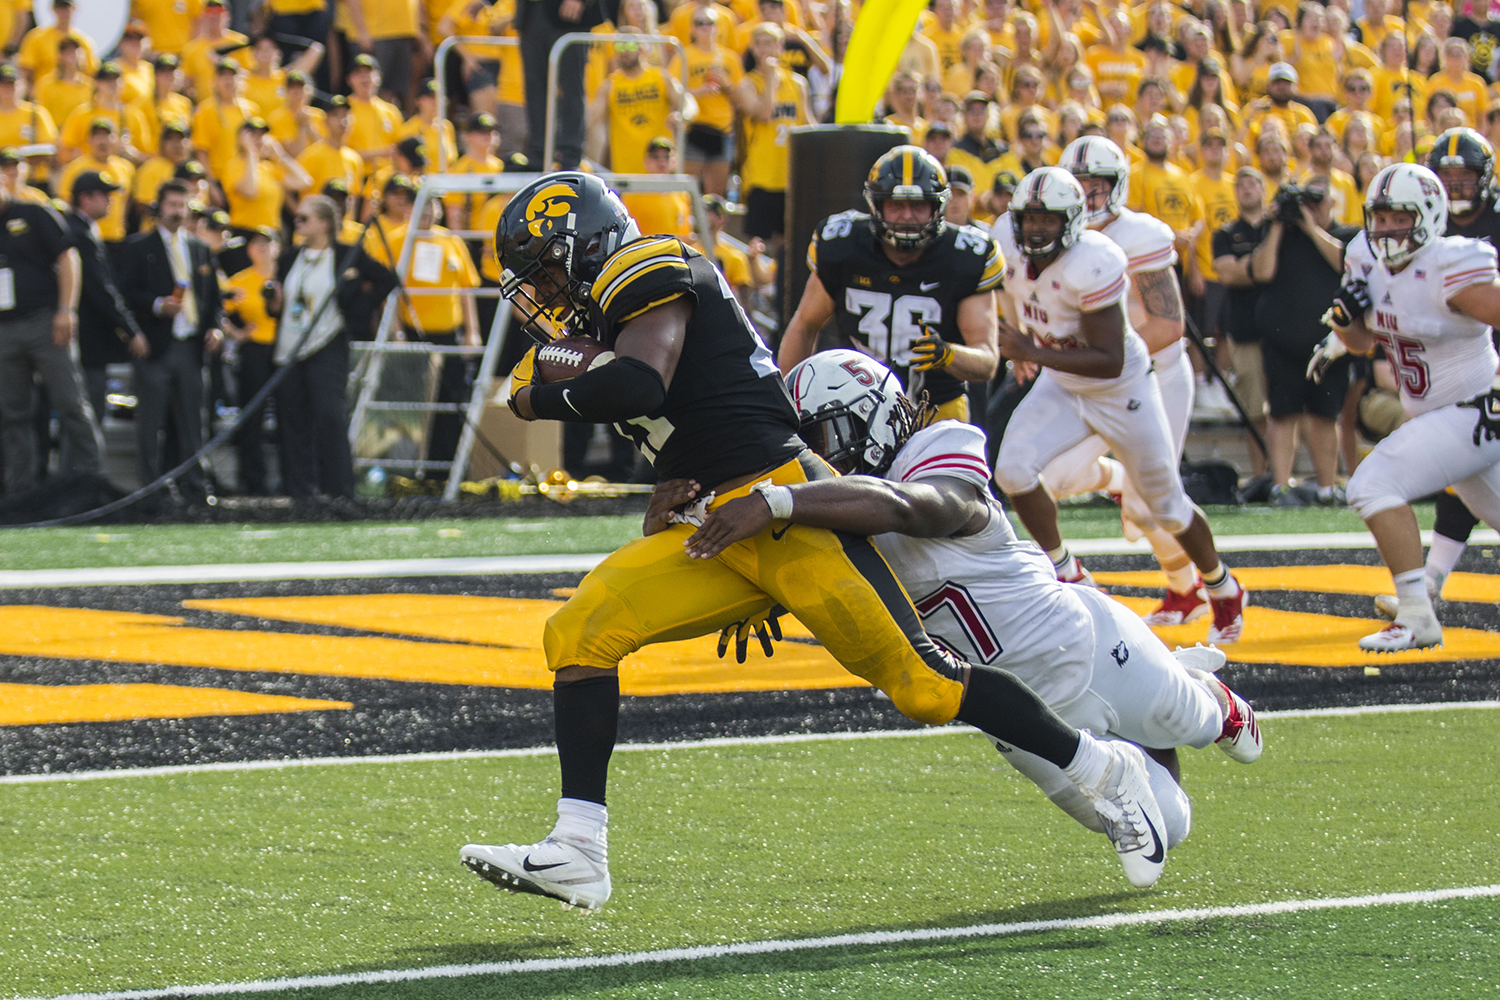 Iowa's Ivory Kelly-Martin sheds a tackle from NIU's Kyle Pugh during the Iowa/NIU football game at Kinnick Stadium on Saturday, Sept. 1, 2018. The Hawkeyes defeated the Huskies, 33-7.